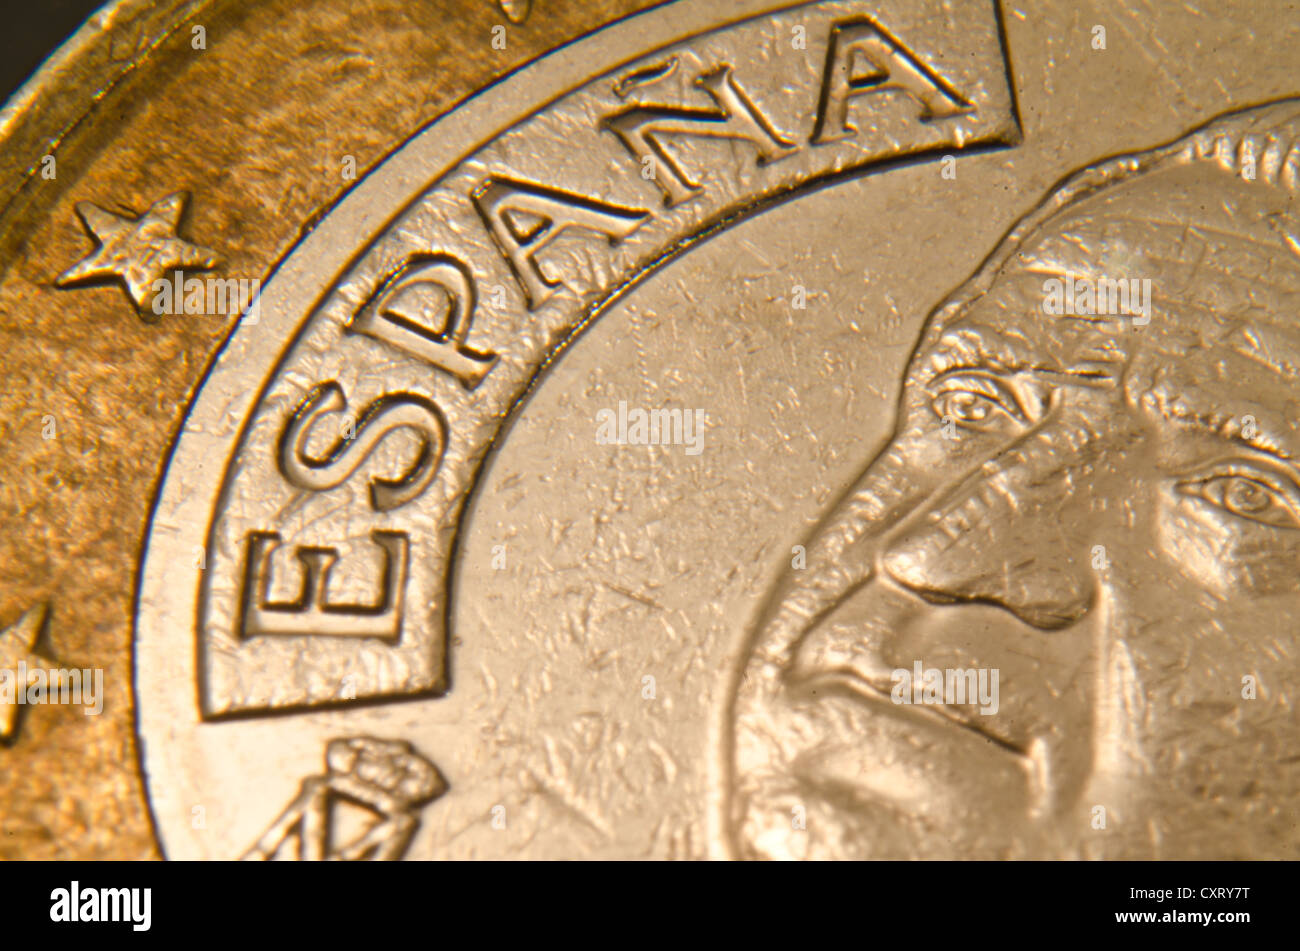 Spanish euro coin, extreme close-up - Stock Image